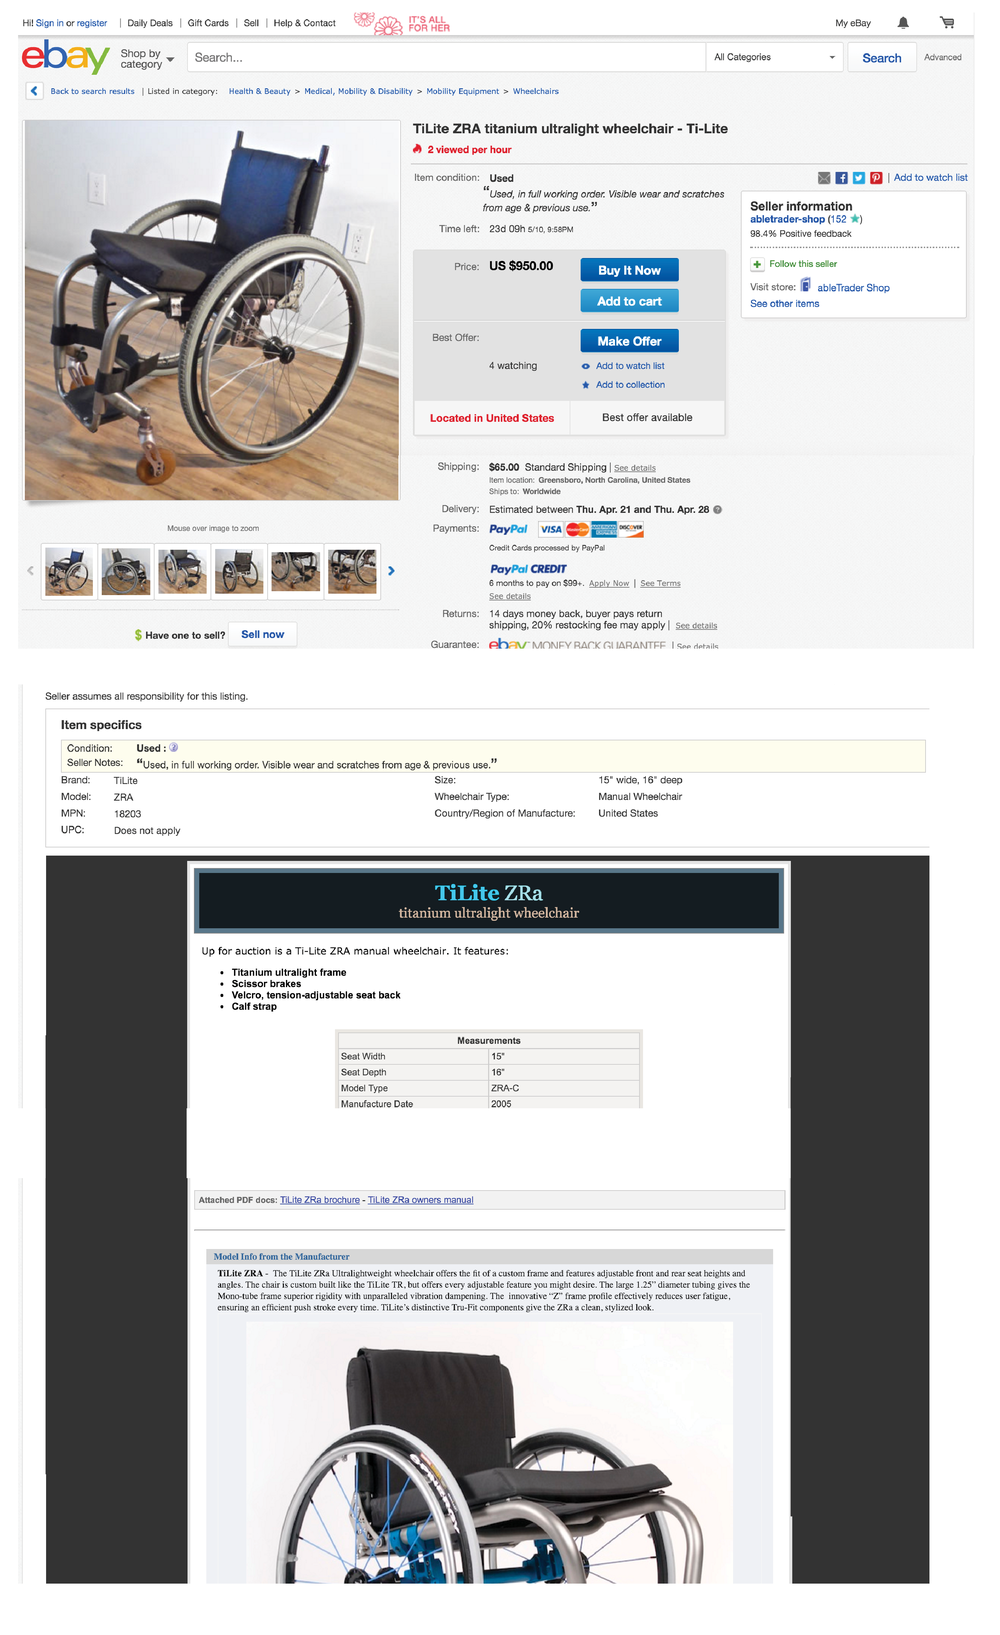 An example of how wheelchairs are typically sold on eBay, with only two axes of measurement for the wheelchair fit.